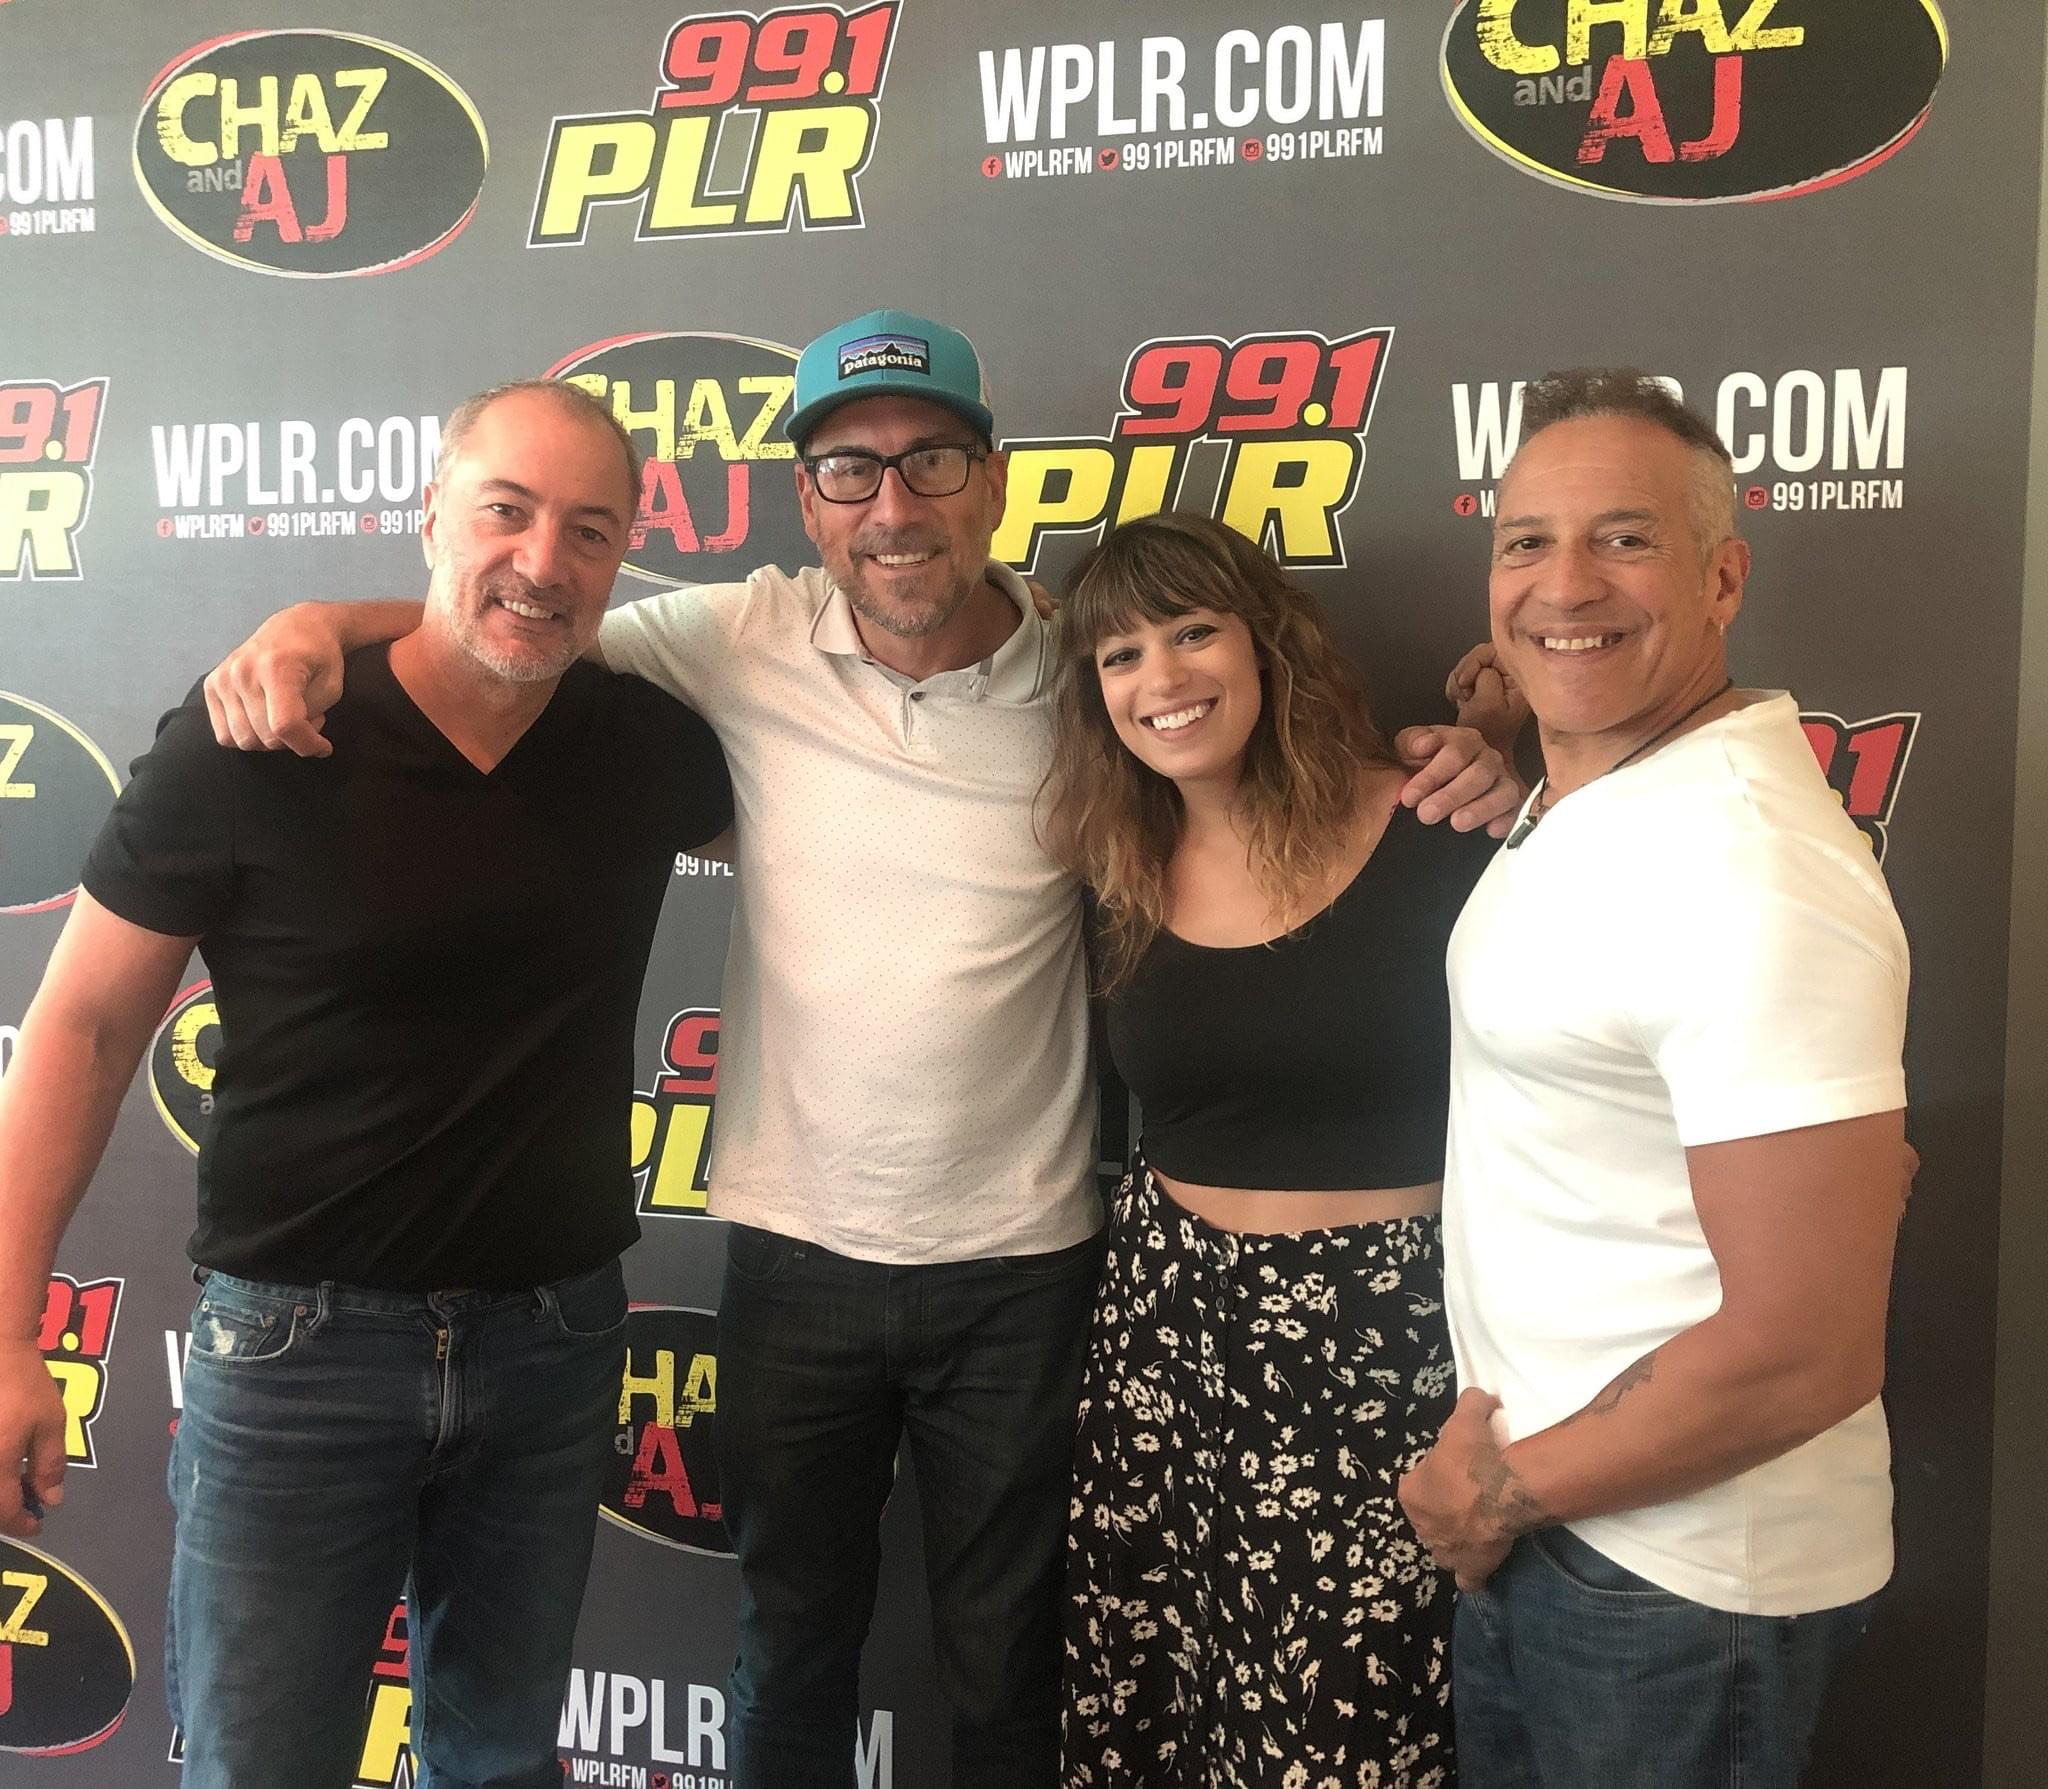 PODCAST – Thursday, June 6: Comedian Joe Matarese Stops By, The Governor's Ball Fiasco, And The Latest On The Missing New Canaan Mother